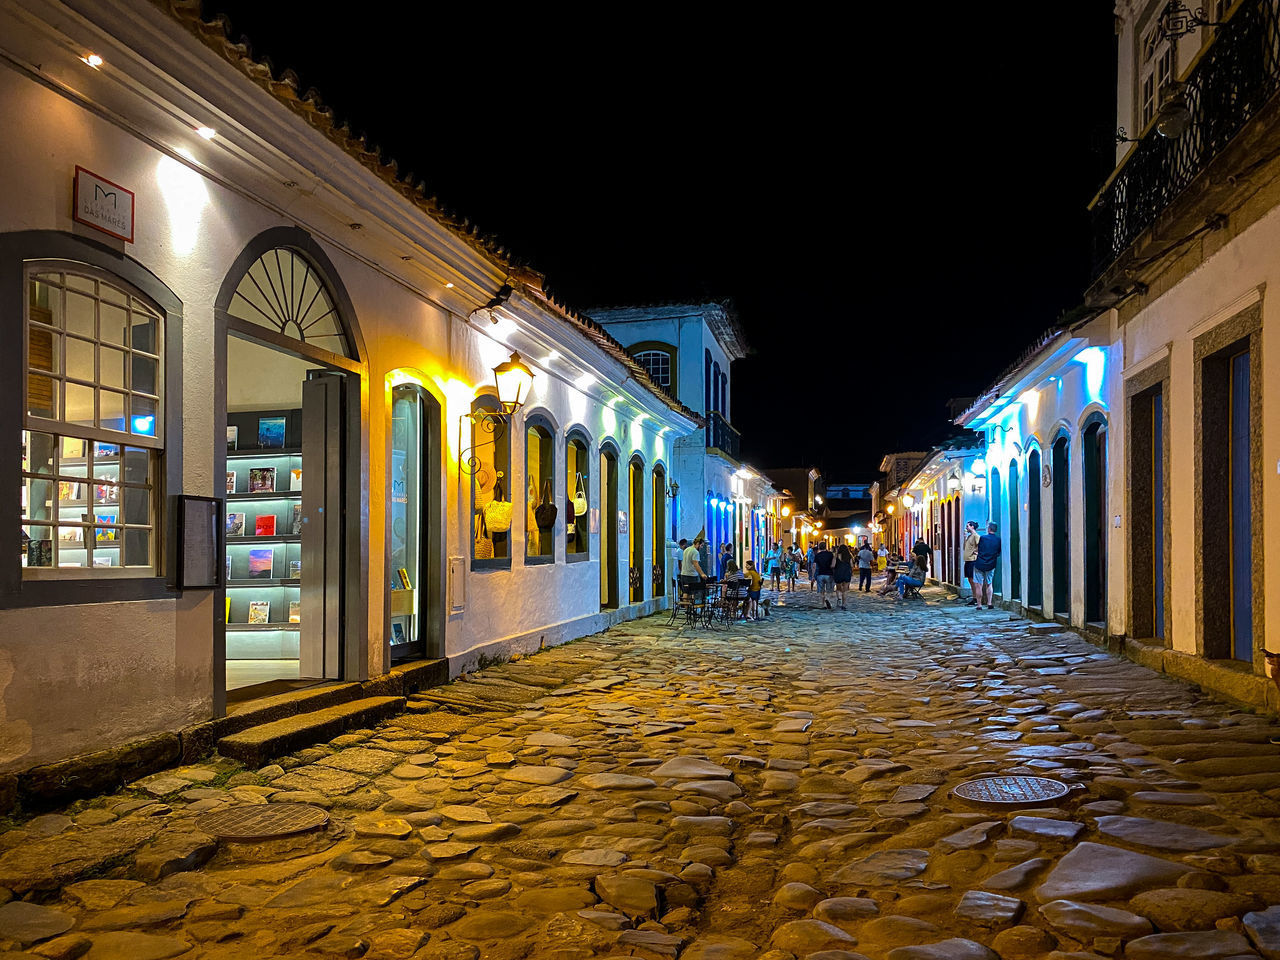 STREET AMIDST ILLUMINATED BUILDINGS AT NIGHT